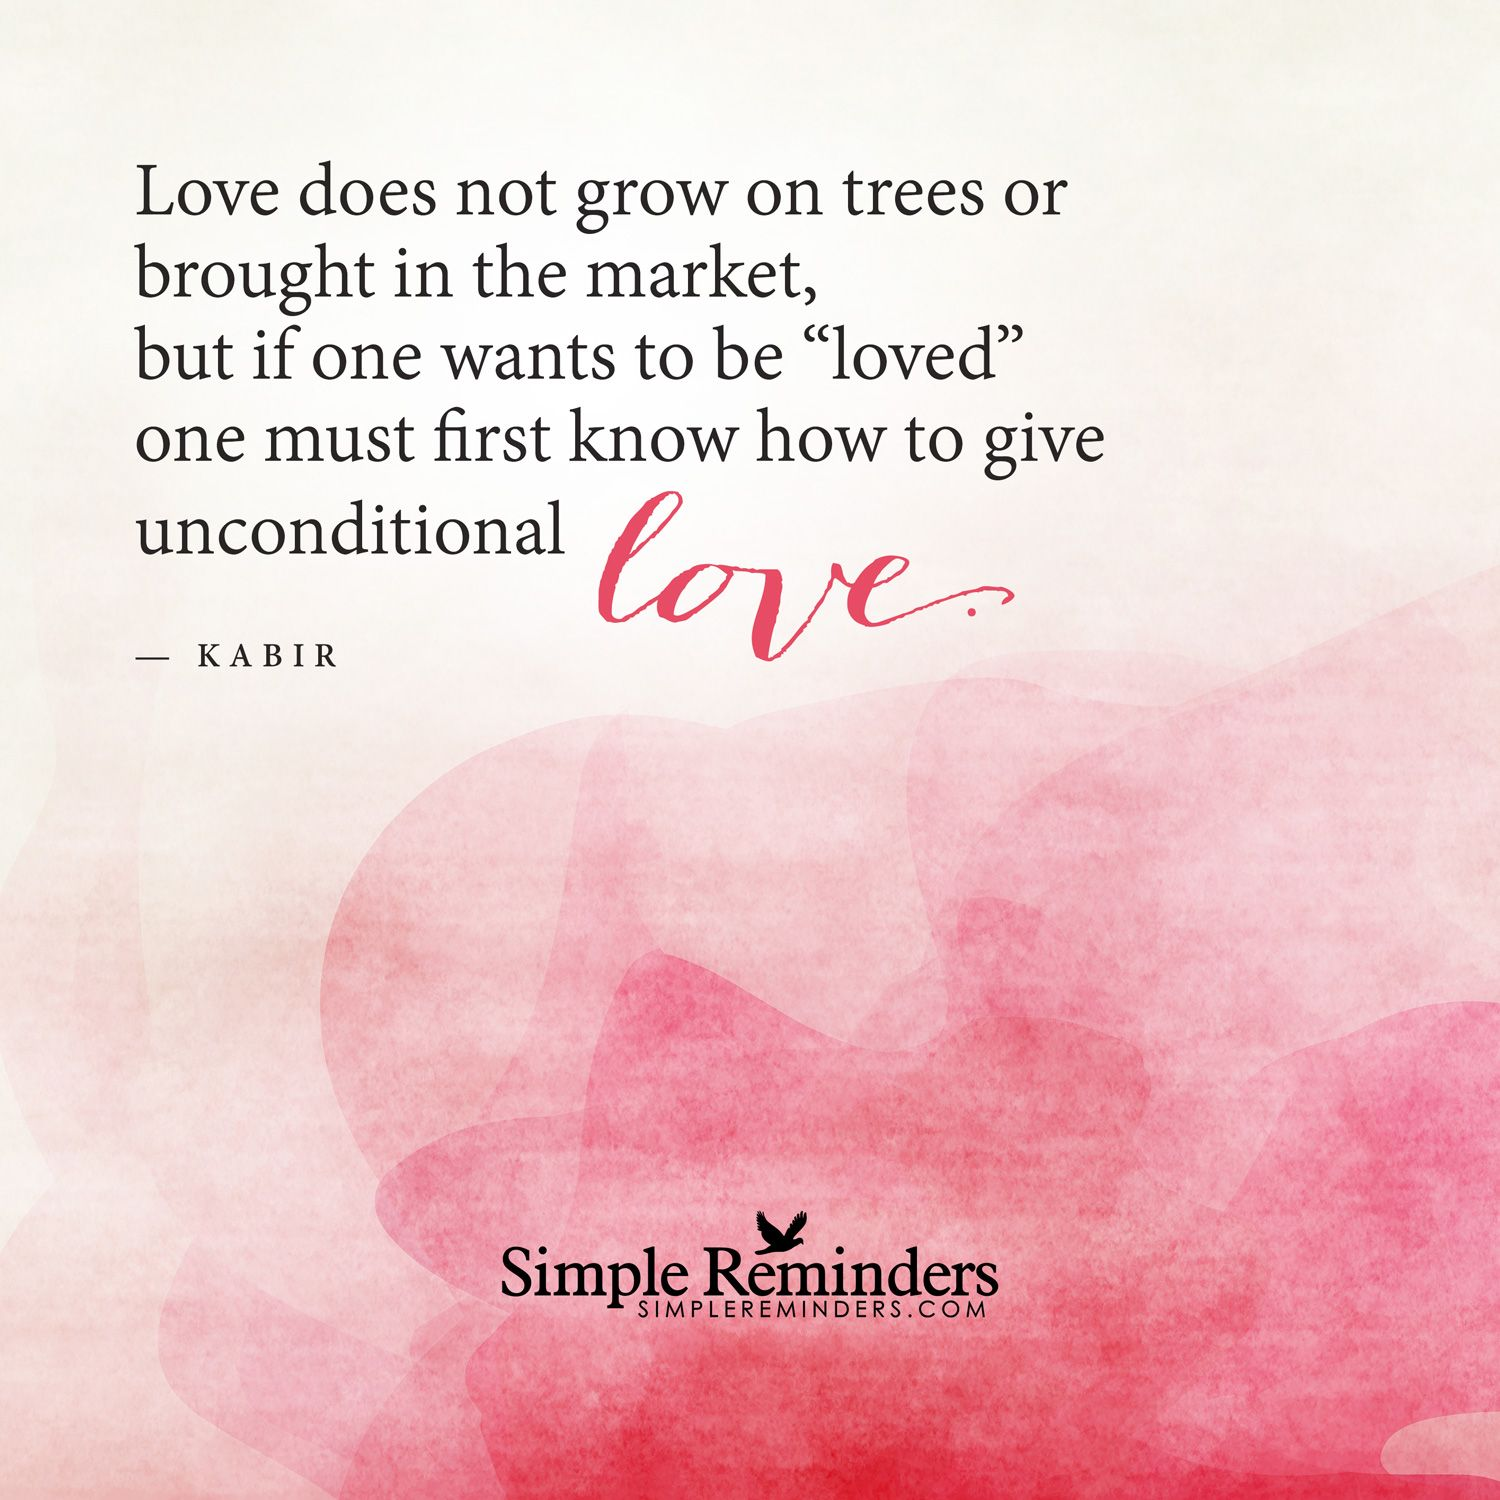 Unconditional love it real or just romantic illusion